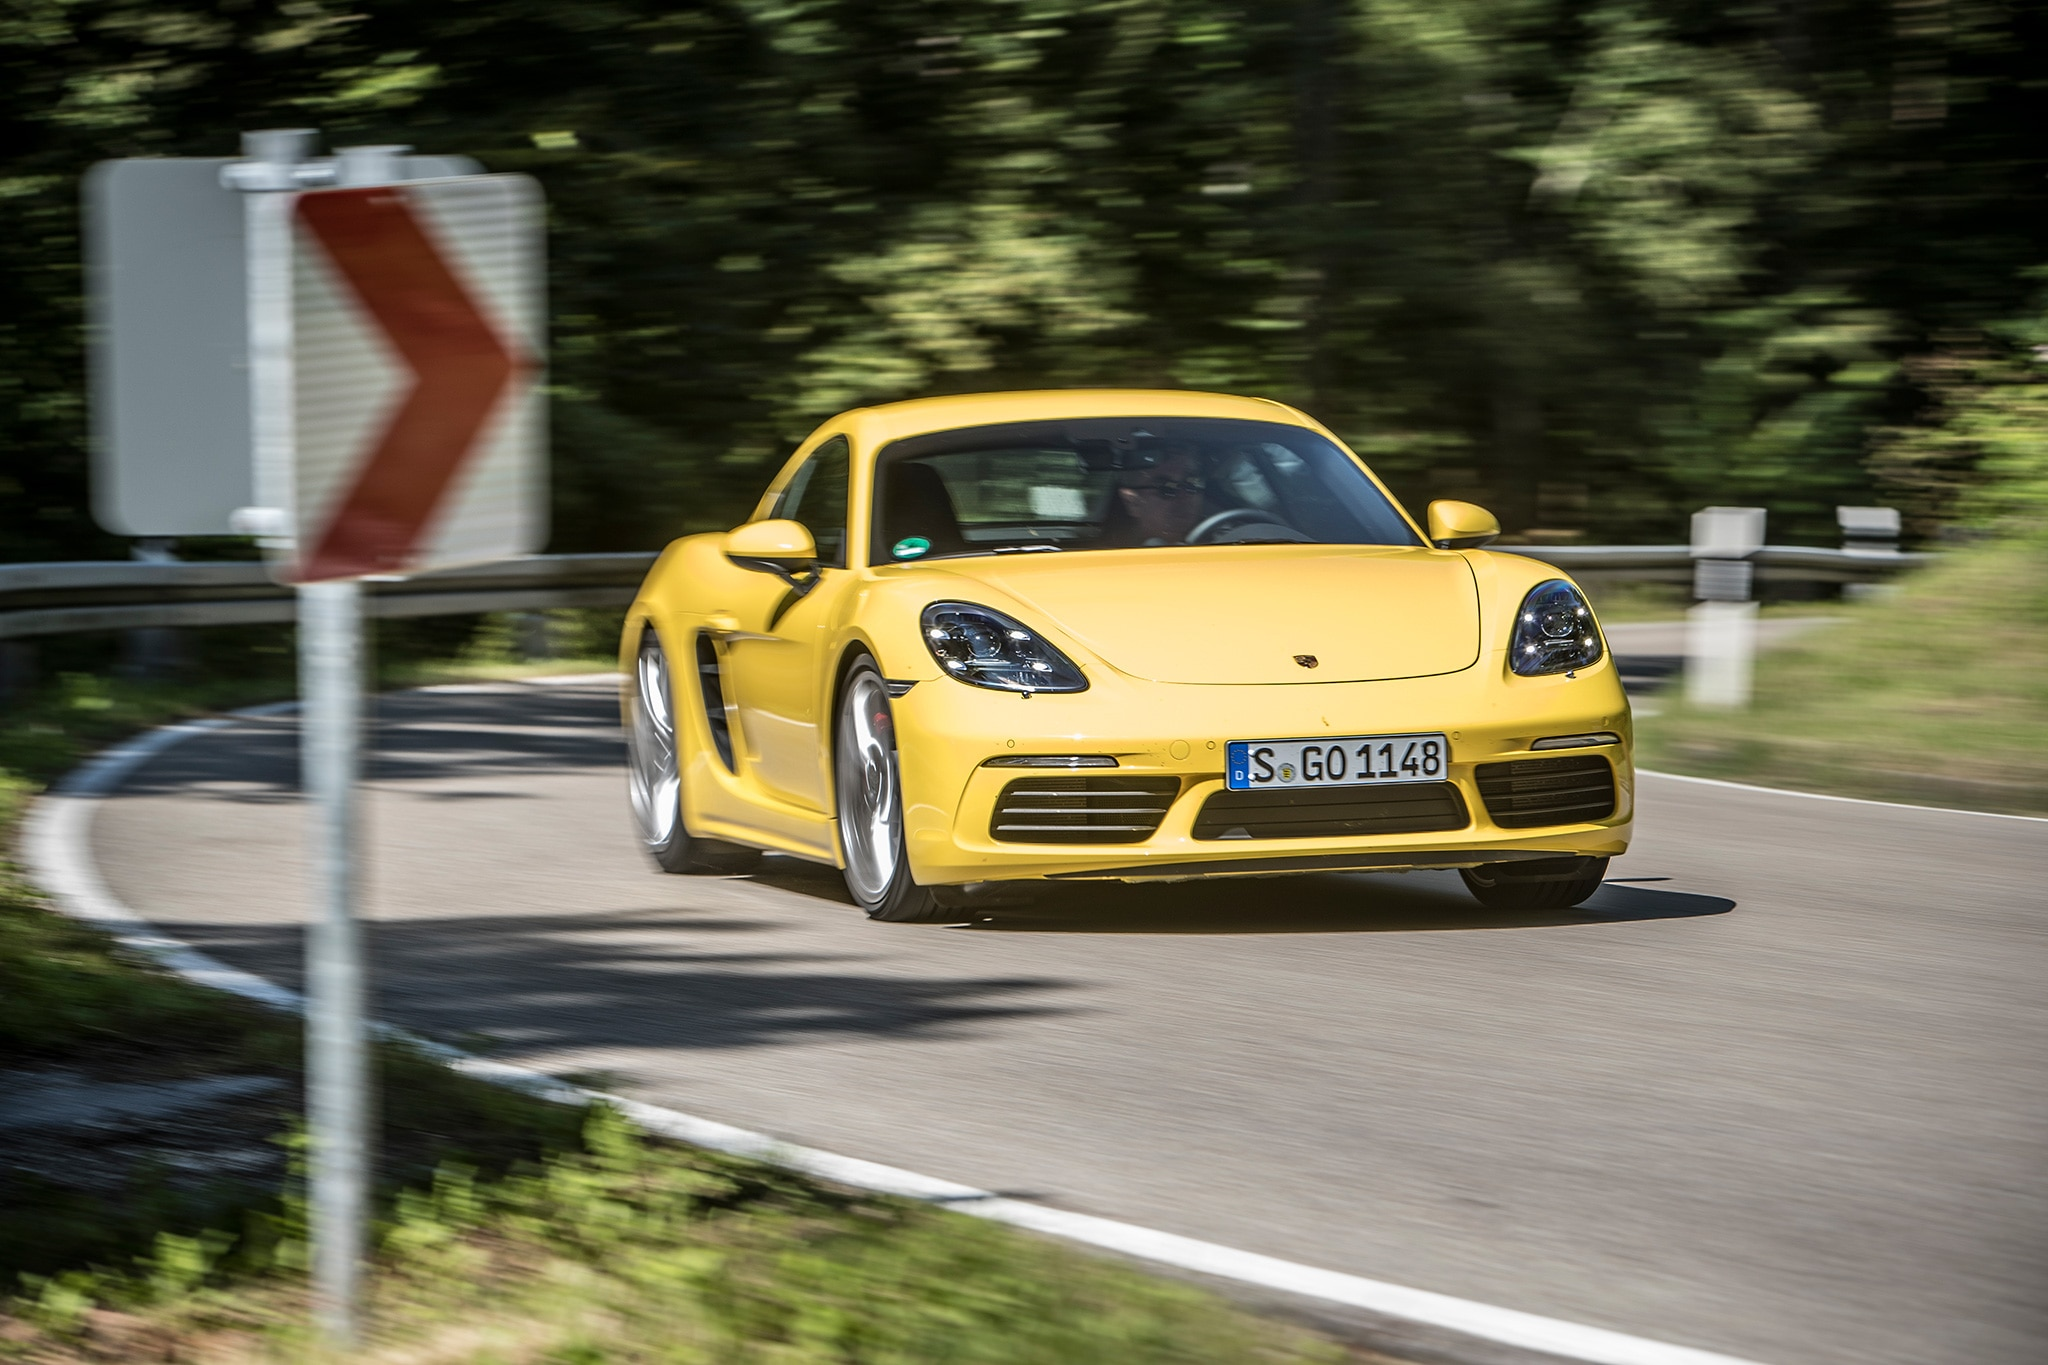 2017 Porsche Cayman S Front View In Motion